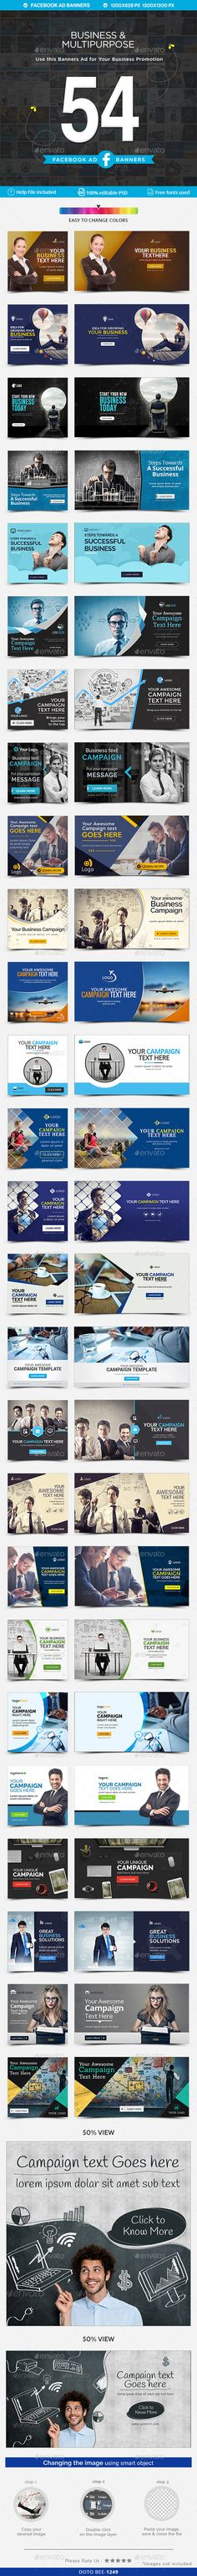 Facebook Ad Banners - 27 Designs